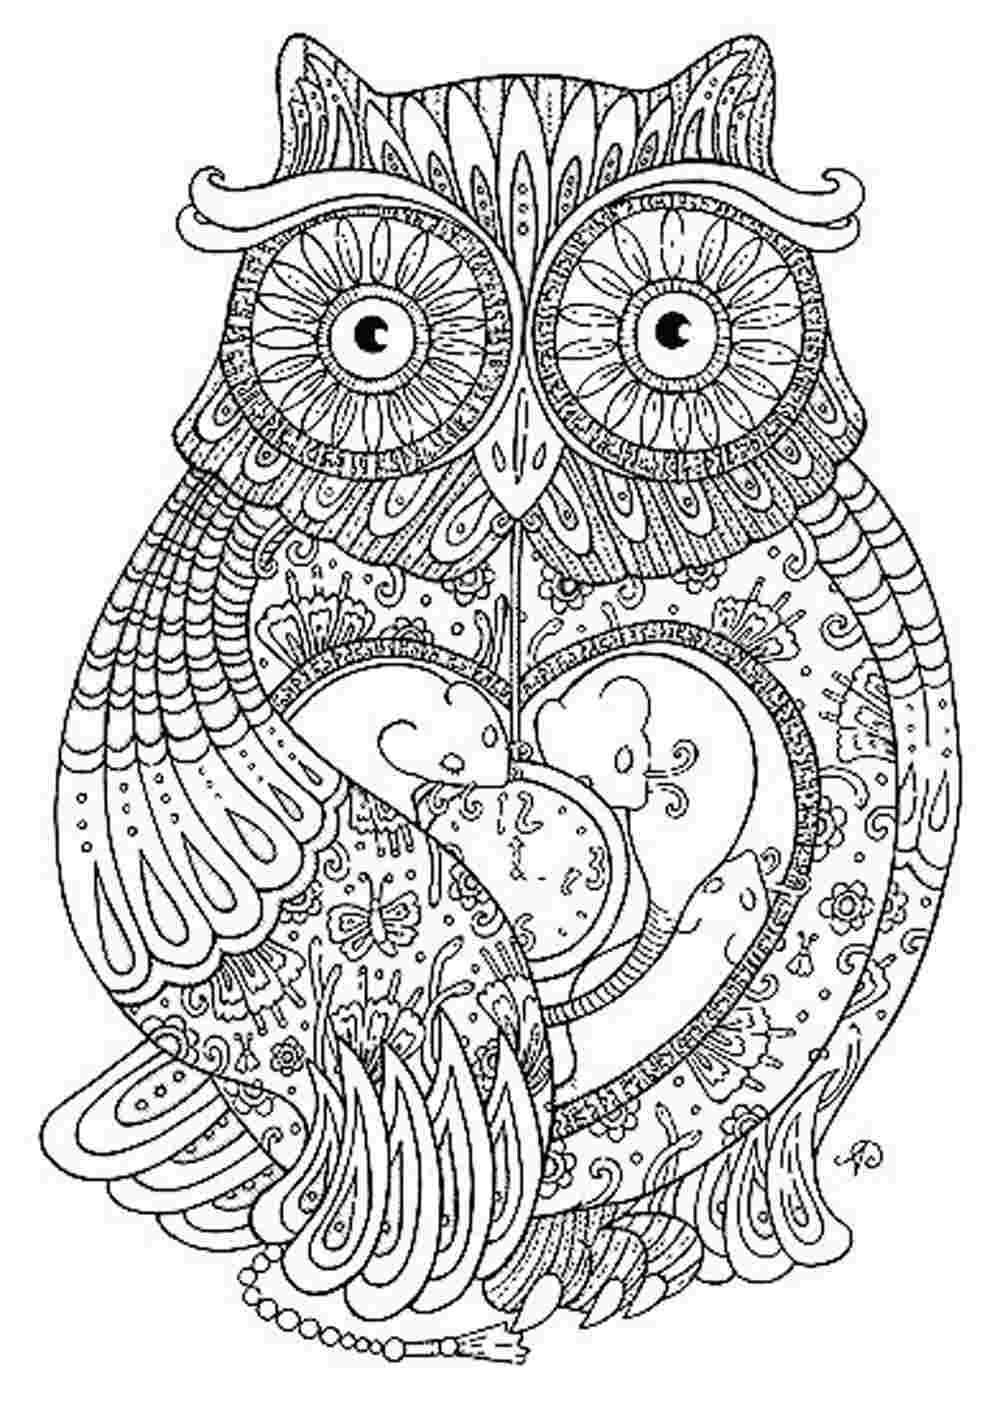 Coloring pages printable for adults -  Full_6131_154881_craftsycoloringpagesinspiringquotes_1 Owl Coloring Pages For Adults